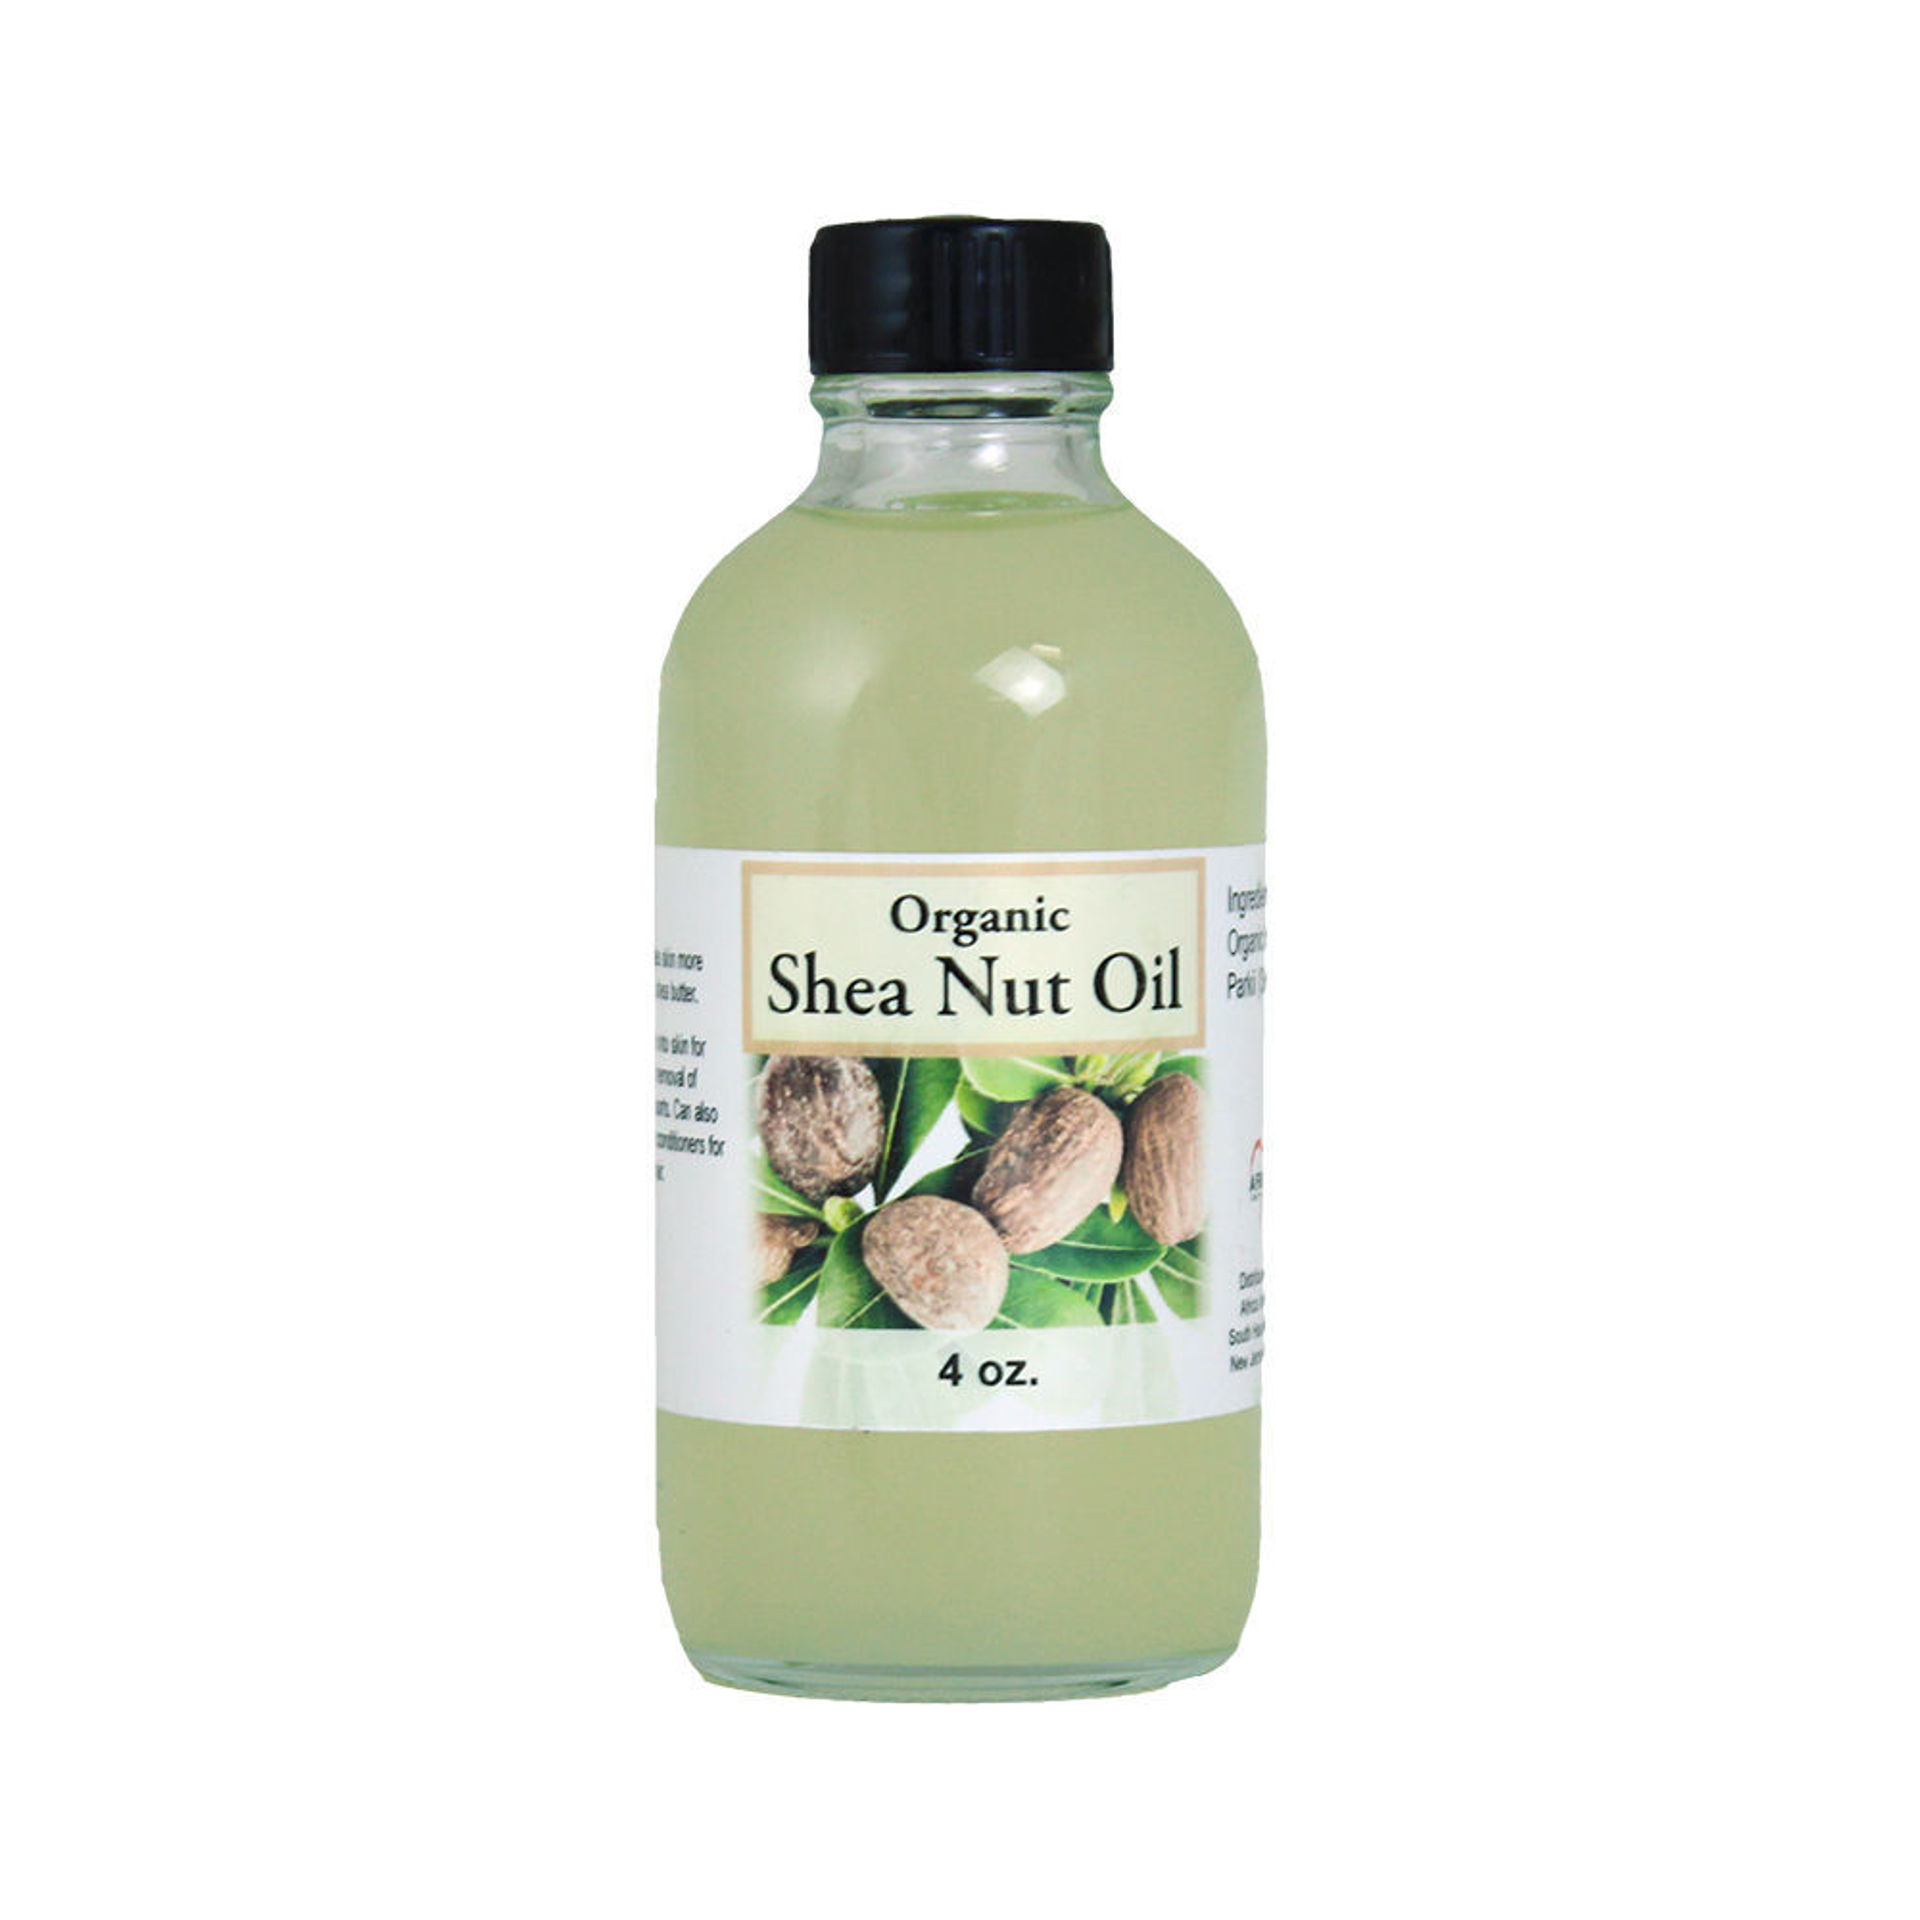 Picture of Organic Shea Nut Oil - 4 oz.